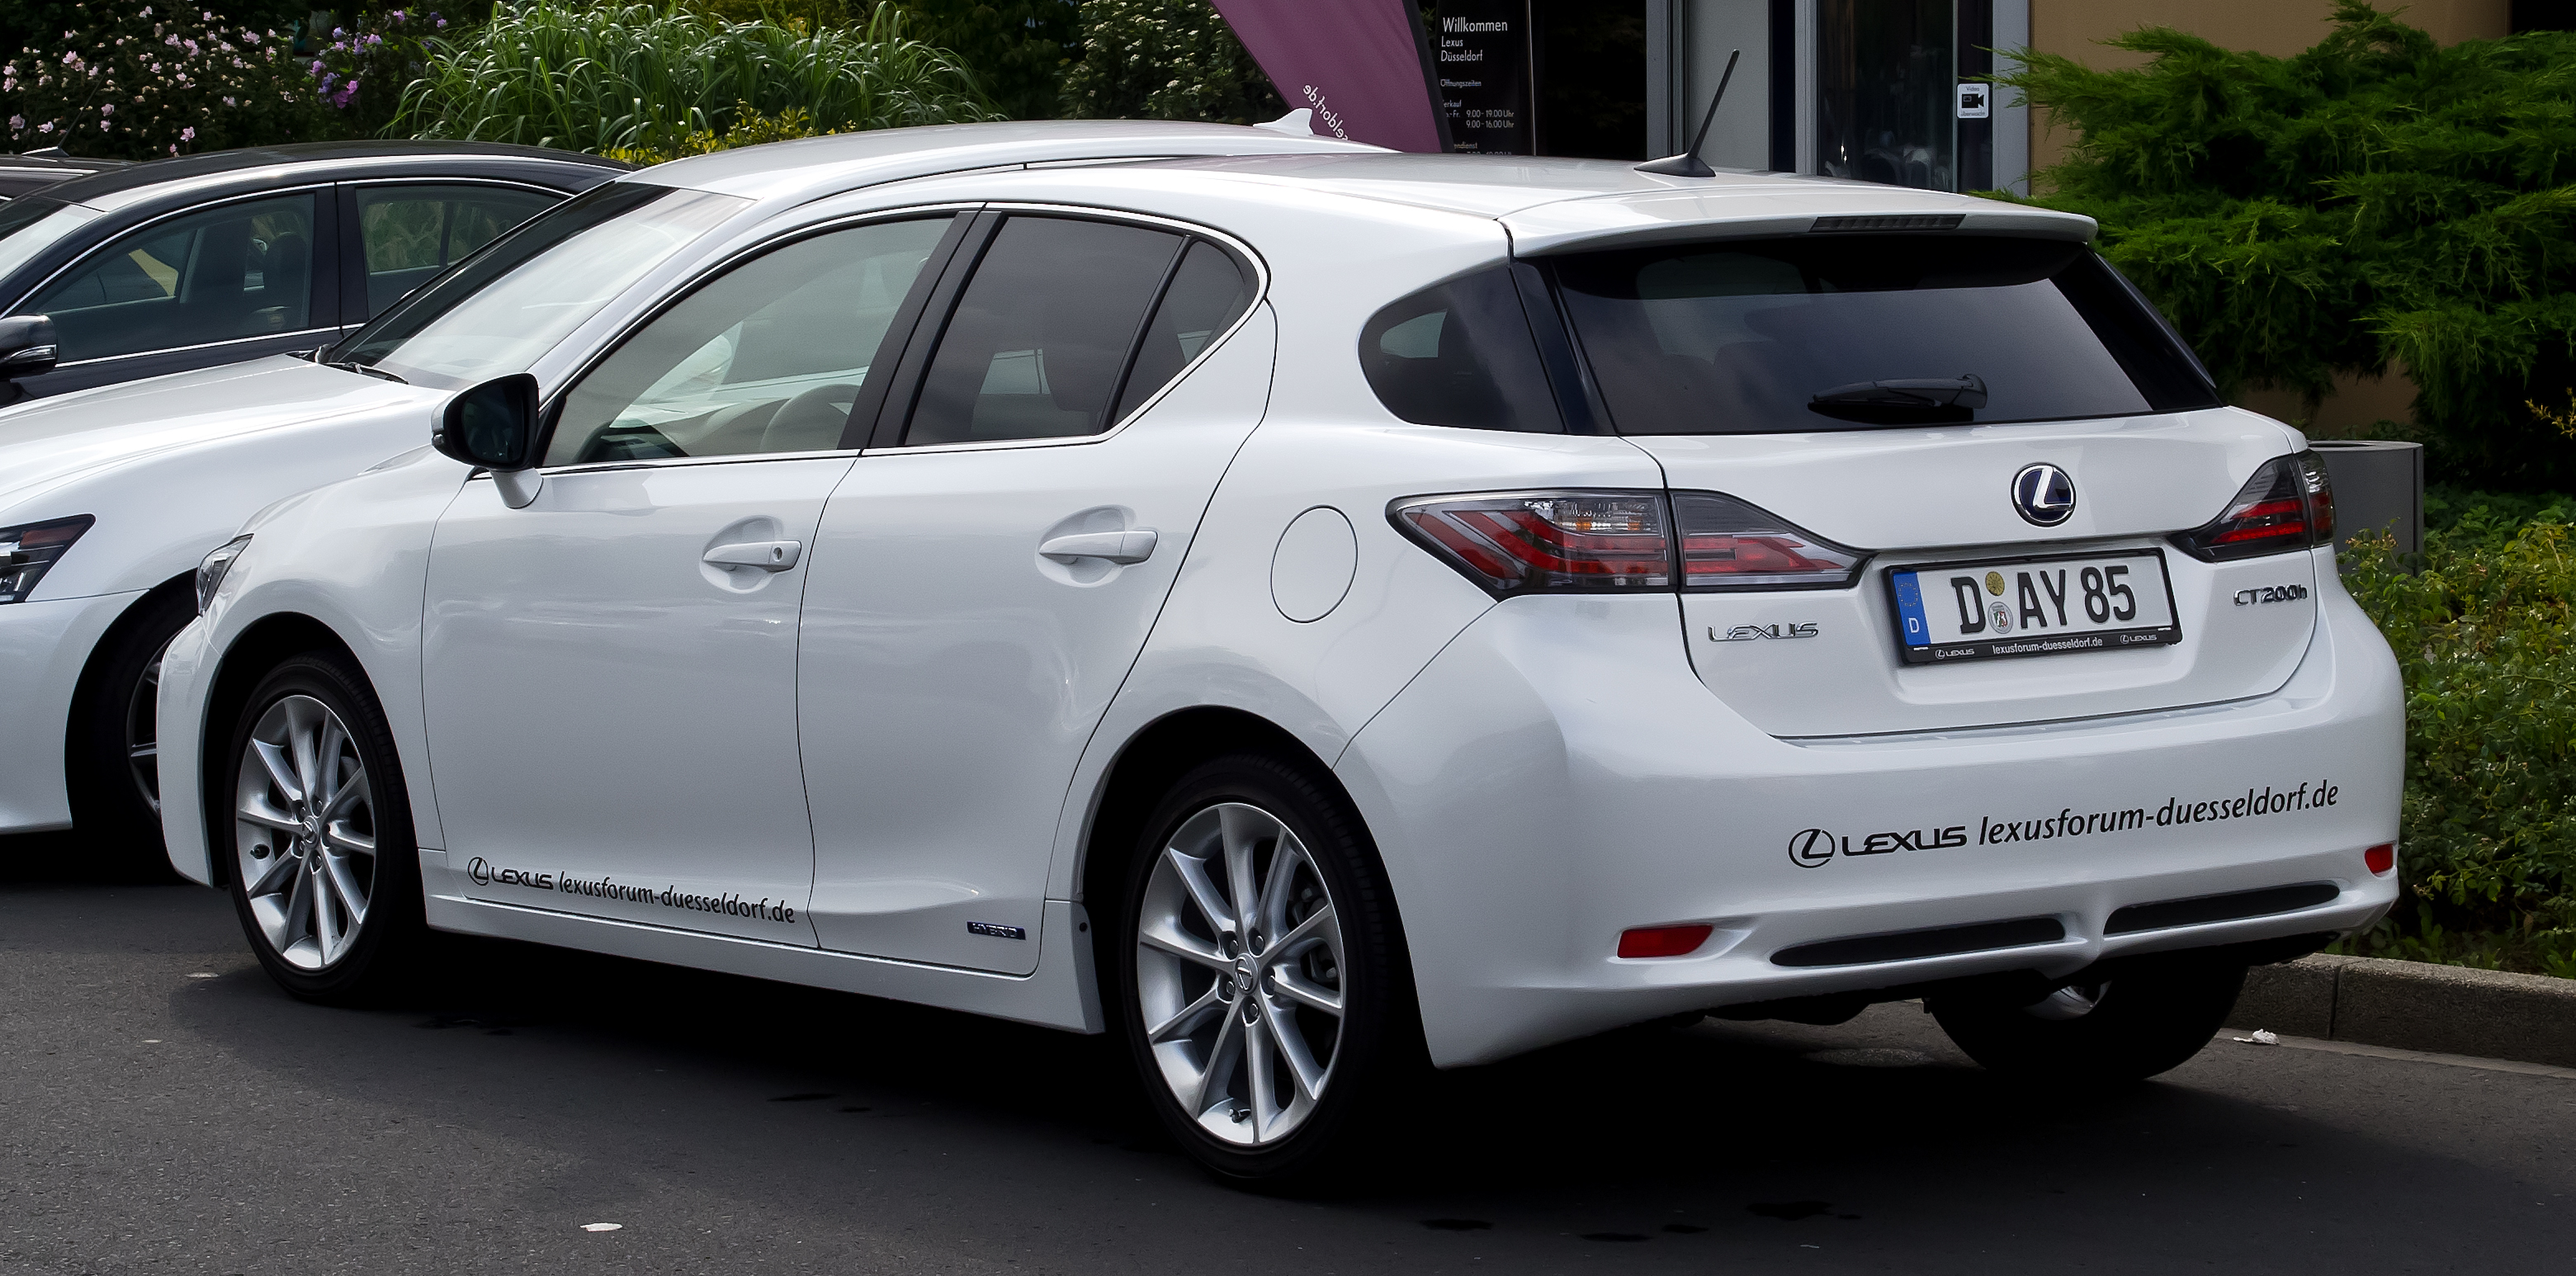 Pictures of lexus ct 200h 2012